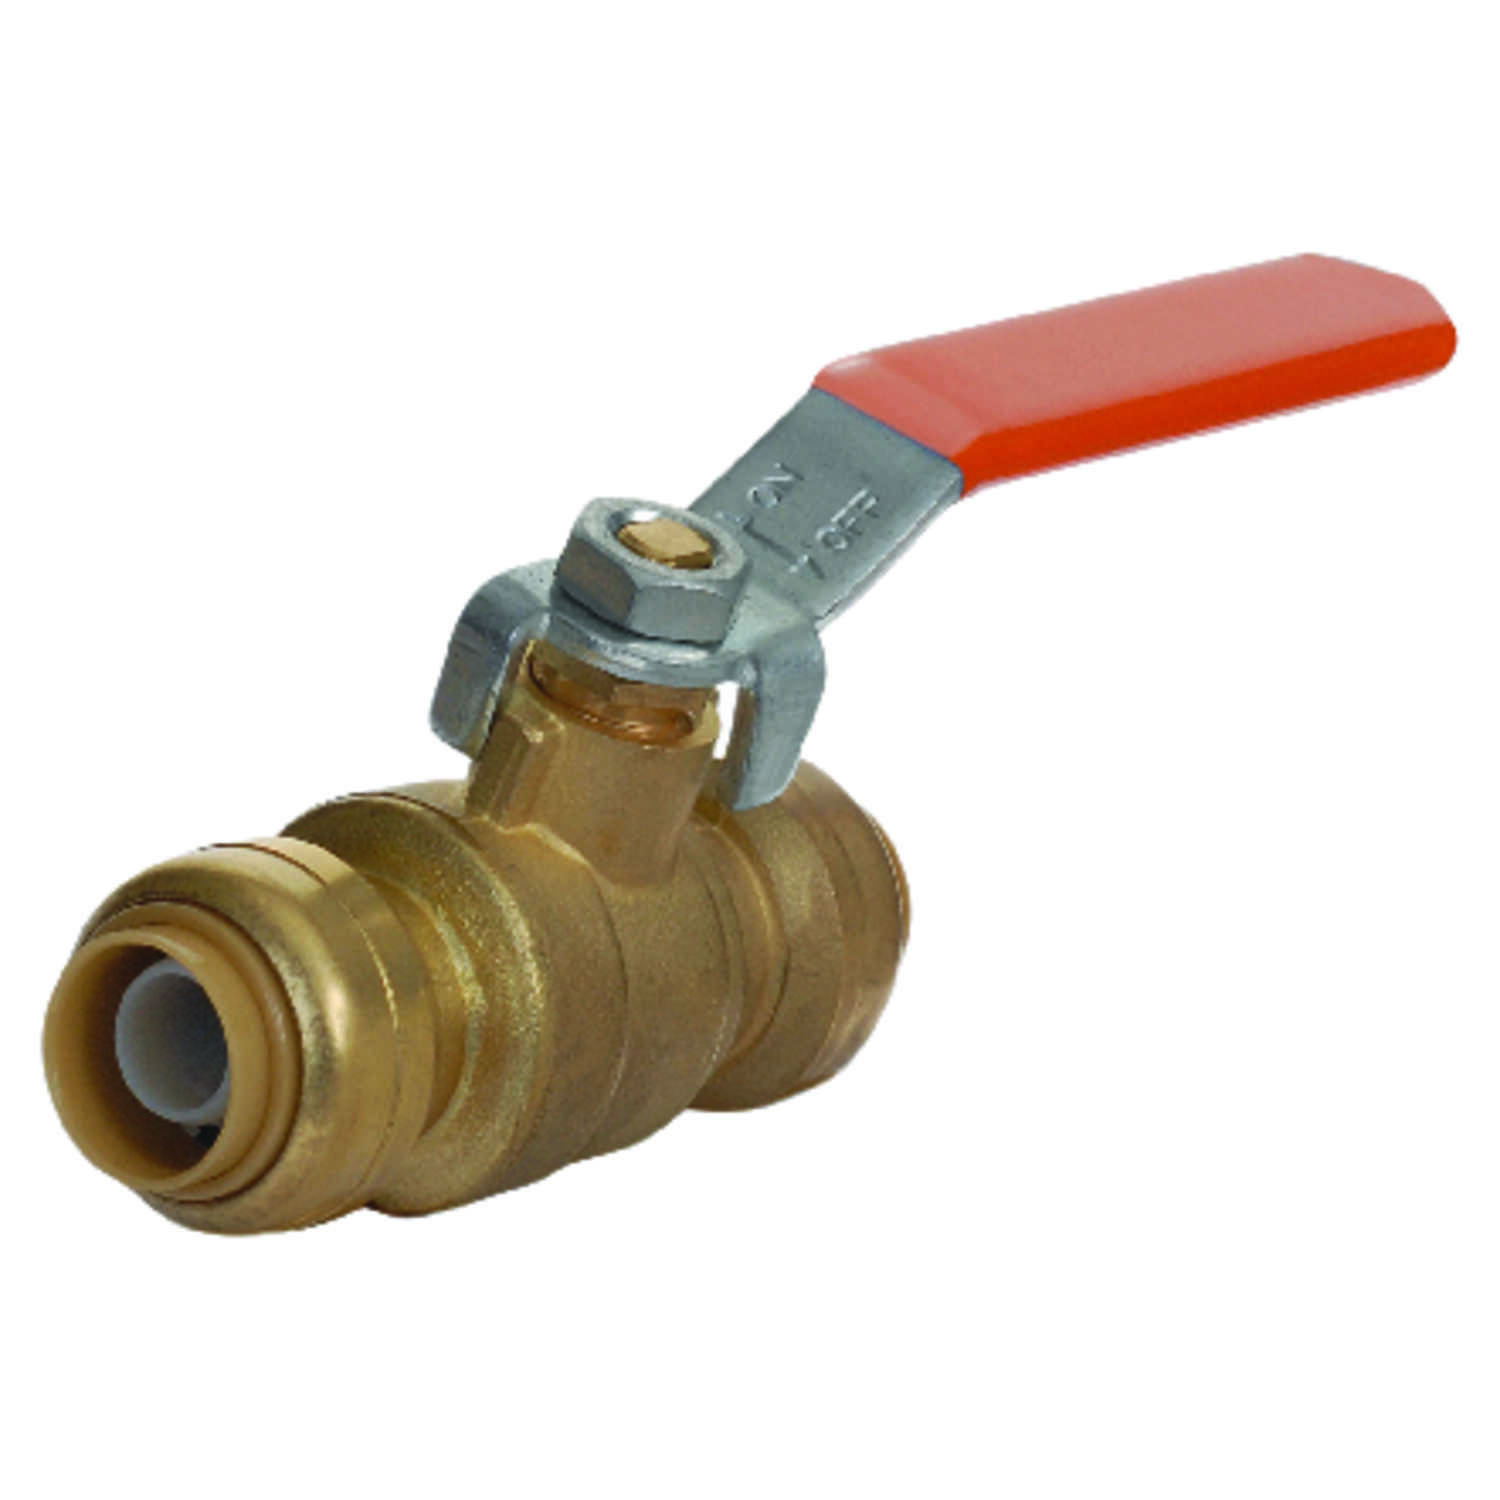 SharkBite  Ball Valve  1/2 in. Dia. x 1/2 in. Dia. Brass